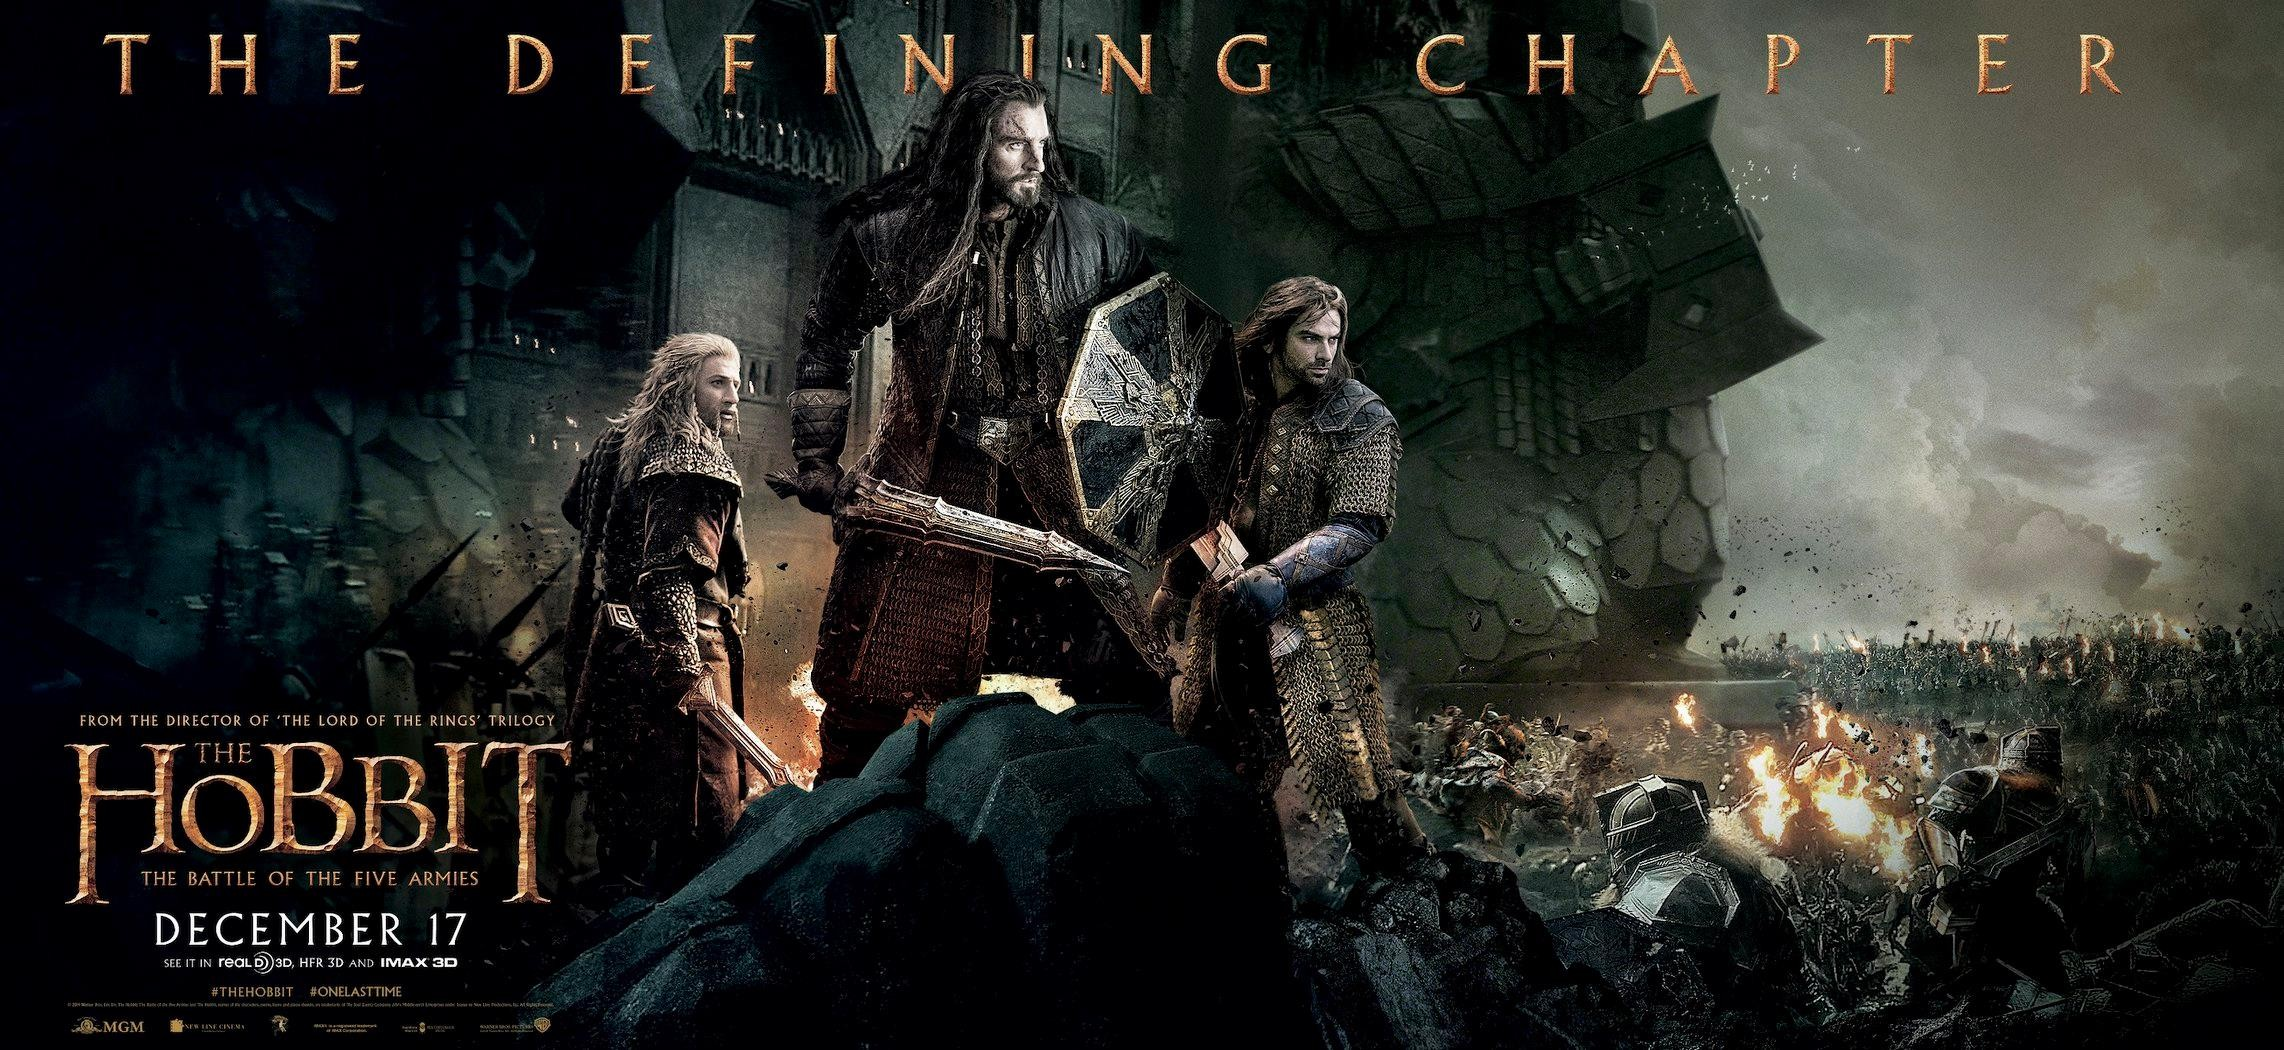 The Hobbit The Battle of the Five Armies-PROMO BANNER XXLG-05NOVEMBRO2014-02